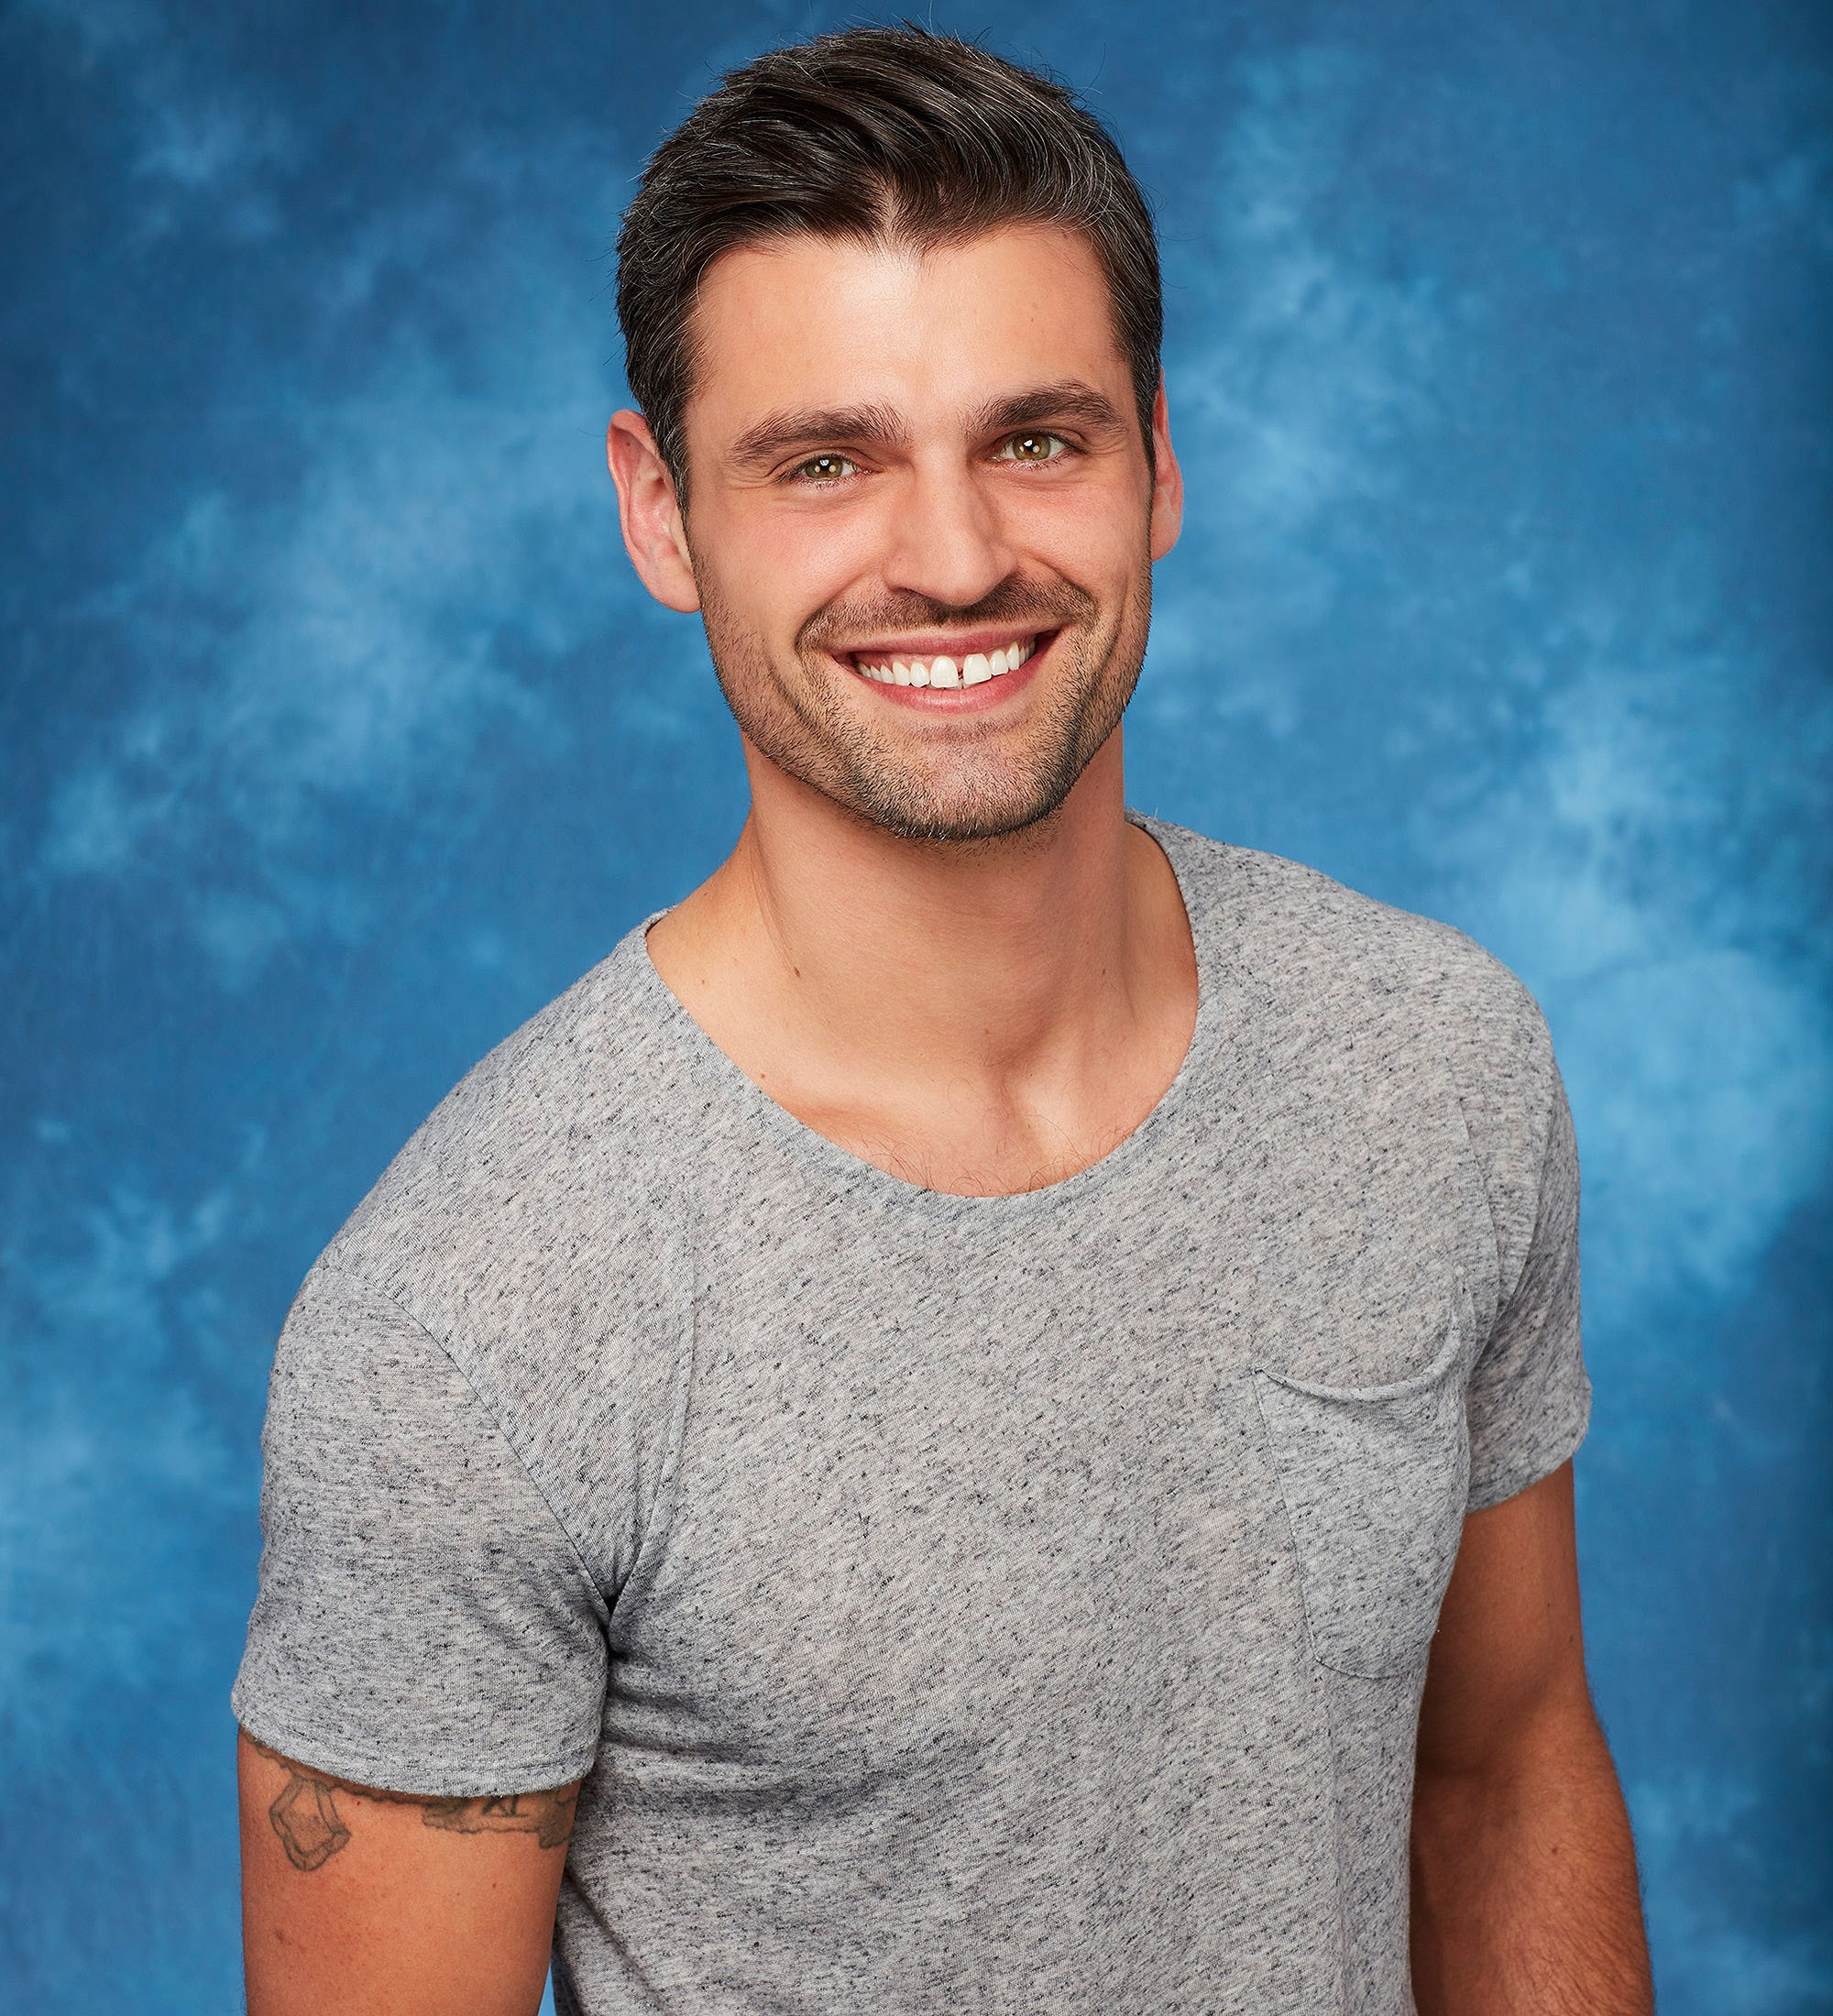 'The Bachelorette' Winner: Who Did Rachel Lindsay Choose? (SPOILERS)